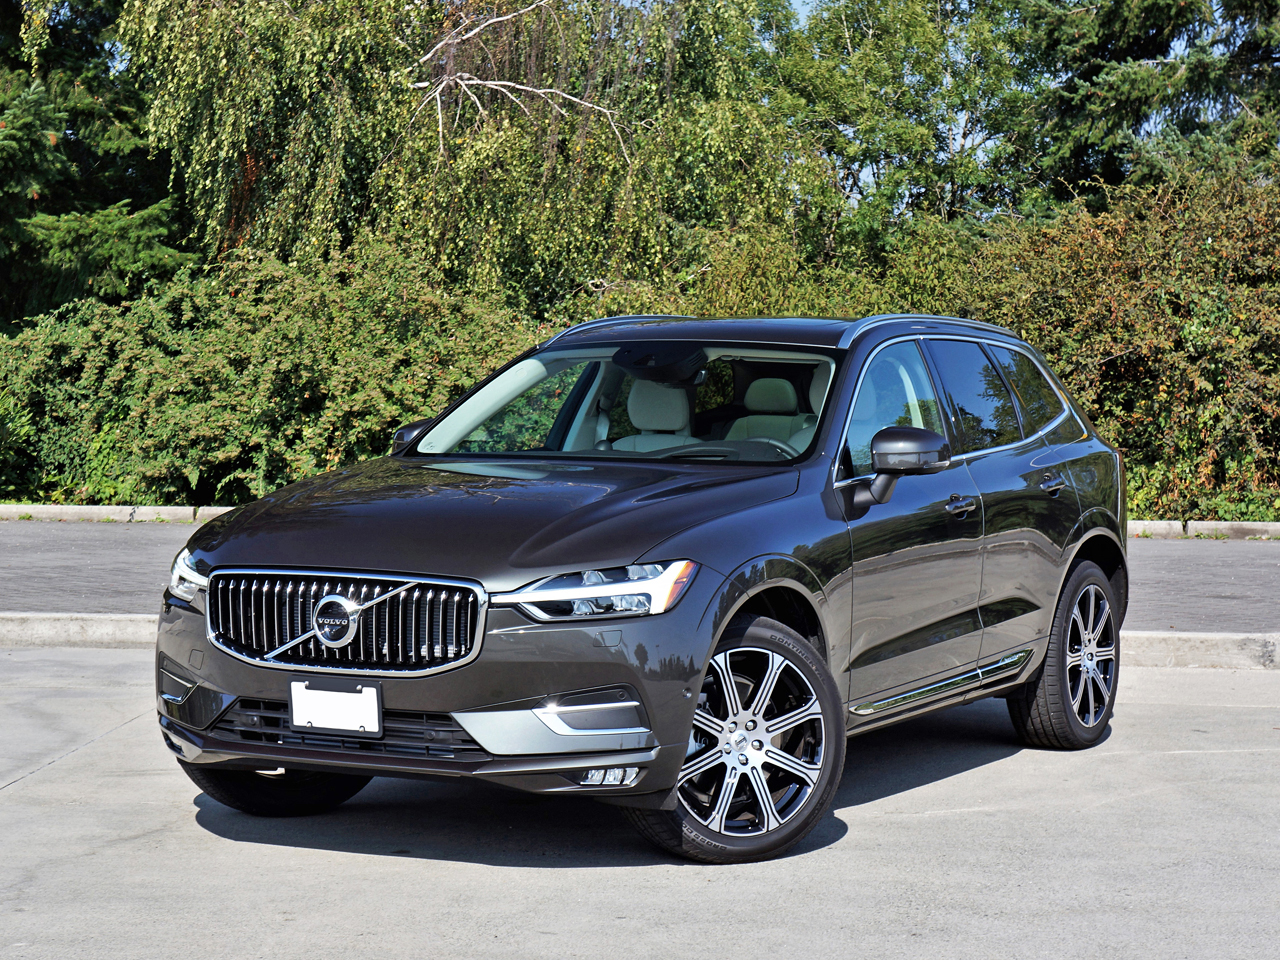 2018 Volvo Xc60 T6 Awd Inscription Road Test Carcostcanada